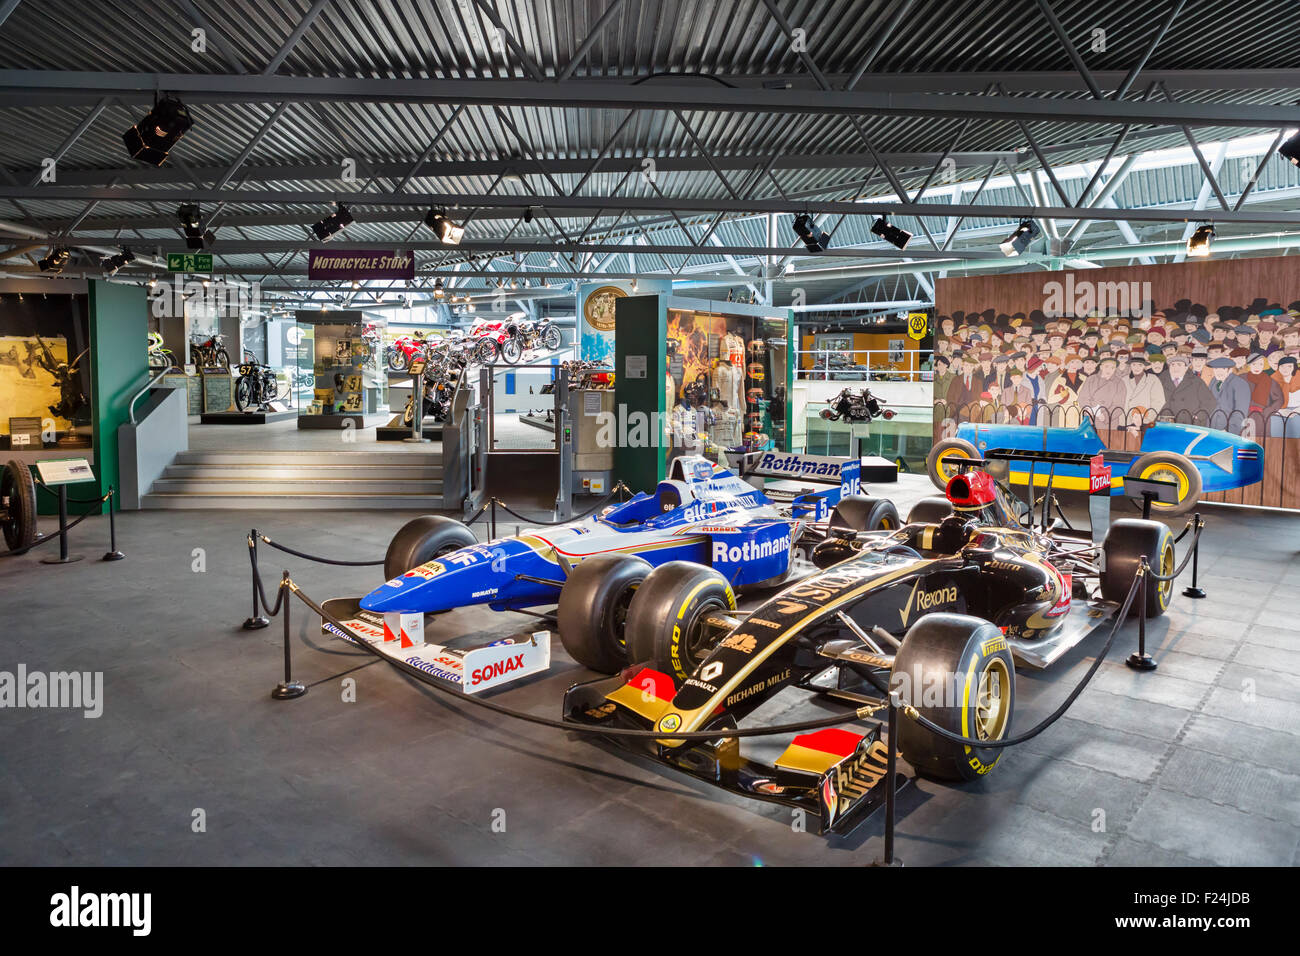 Formula 1 racing cars on display at the National Motor Museum, Beaulieu, Hampshire, England UK - Stock Image